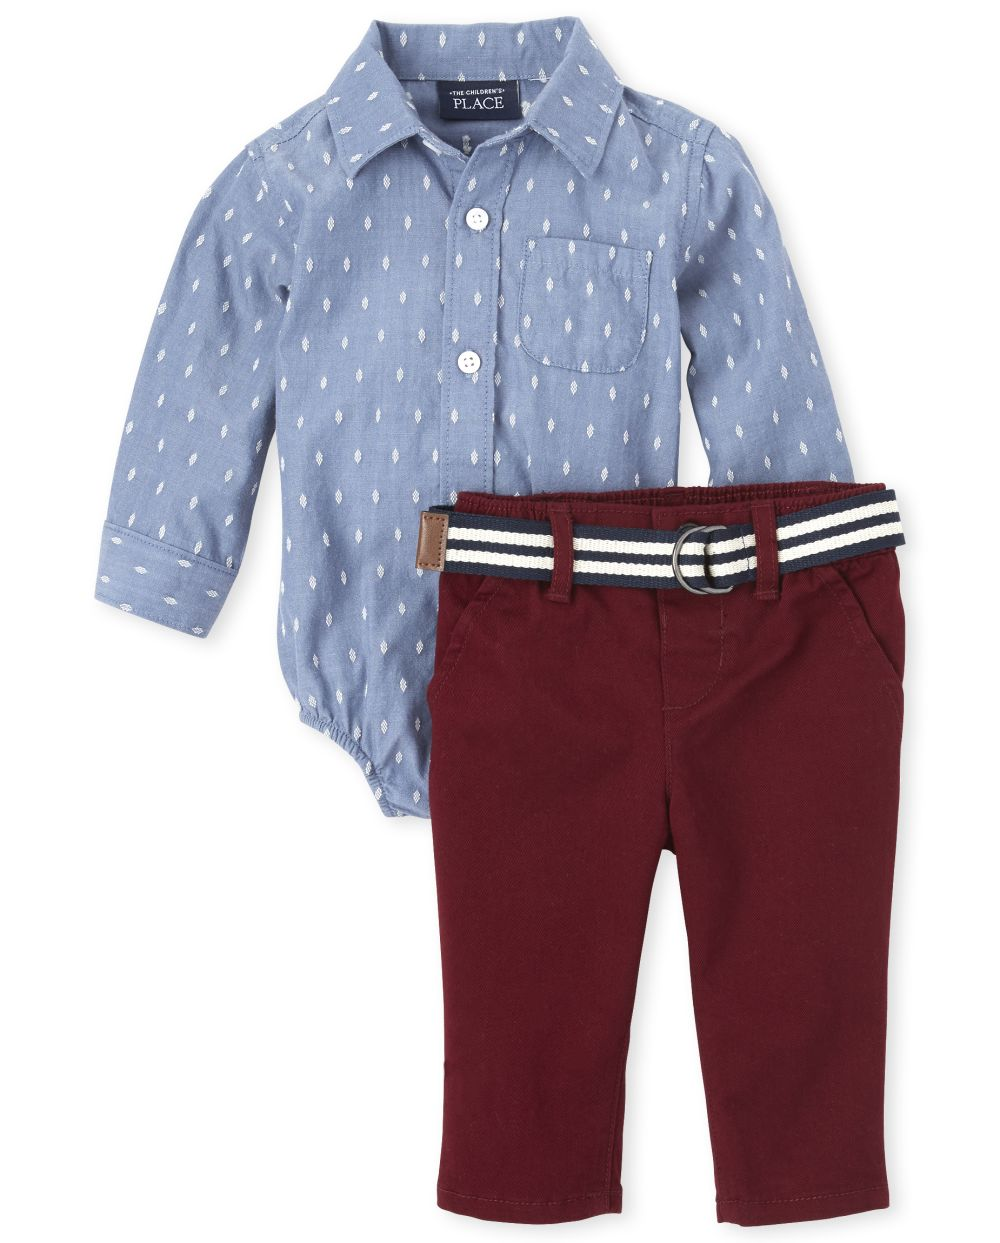 Baby Boys Chambray Button Down Bodysuit Outfit Set